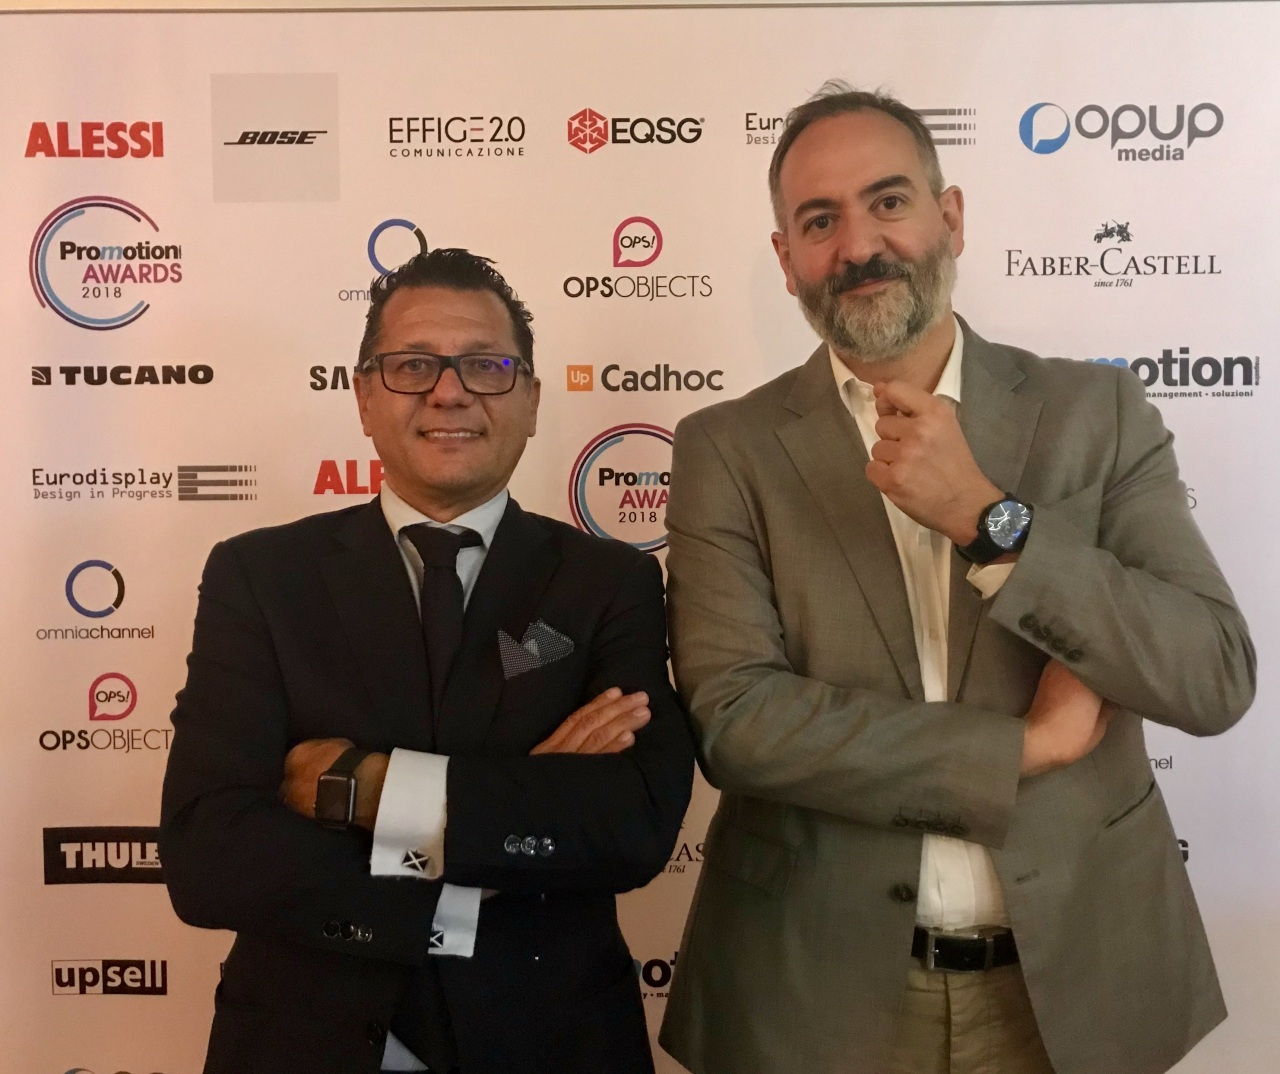 Acqua Group: miglior campagna di Field Marketing al Promotion Award 2018 per Mela Val Venosta